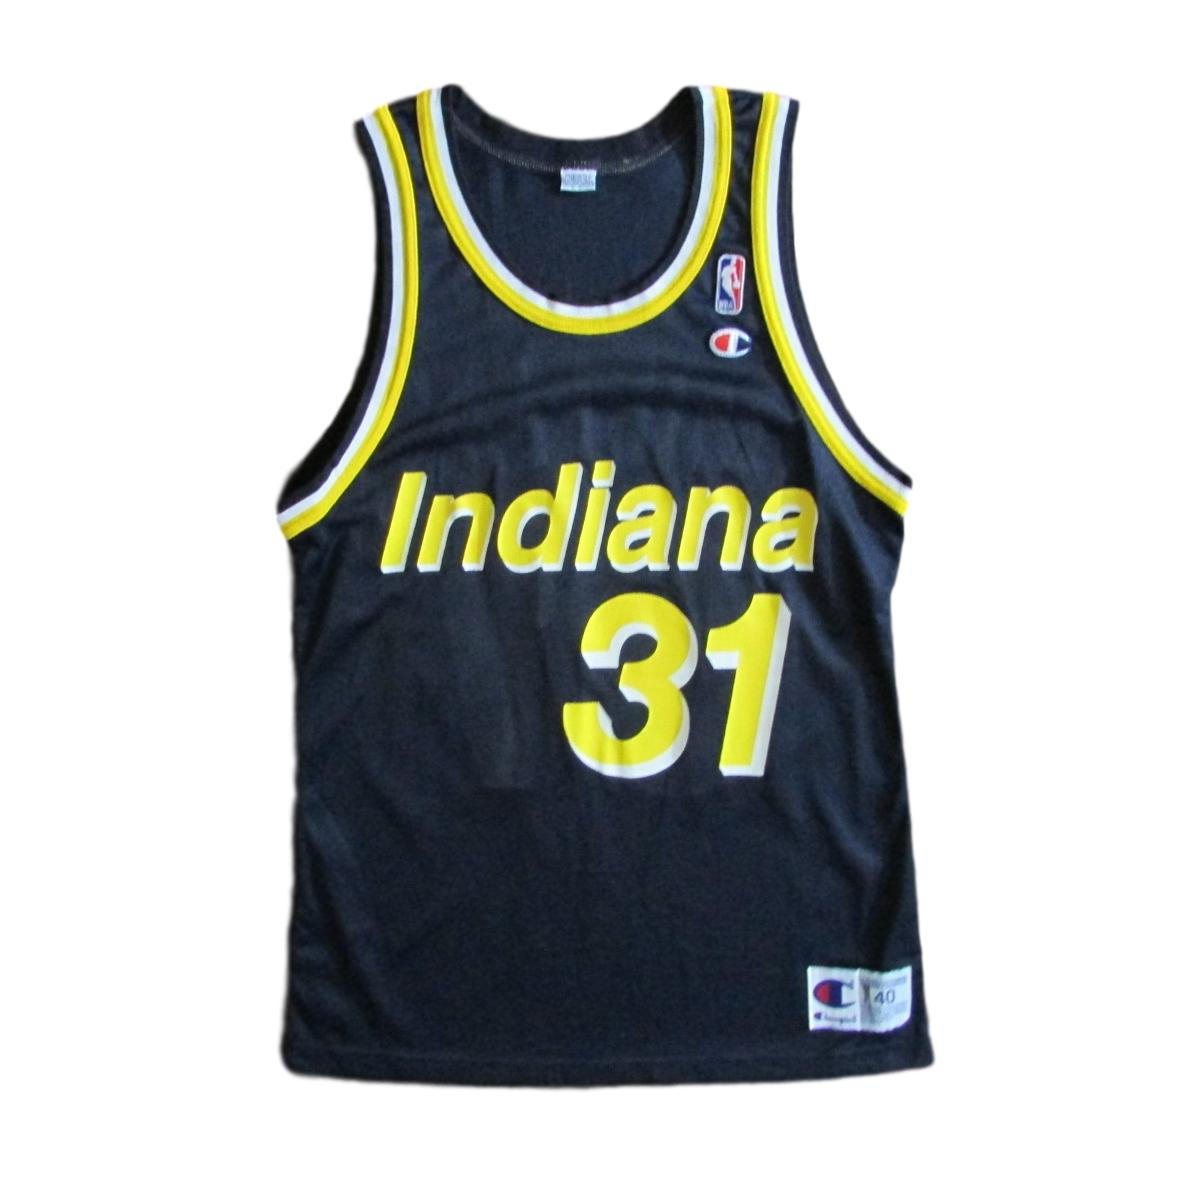 Indiana Pacers Reggie Miller Basketball Champion Jersey Sz 40